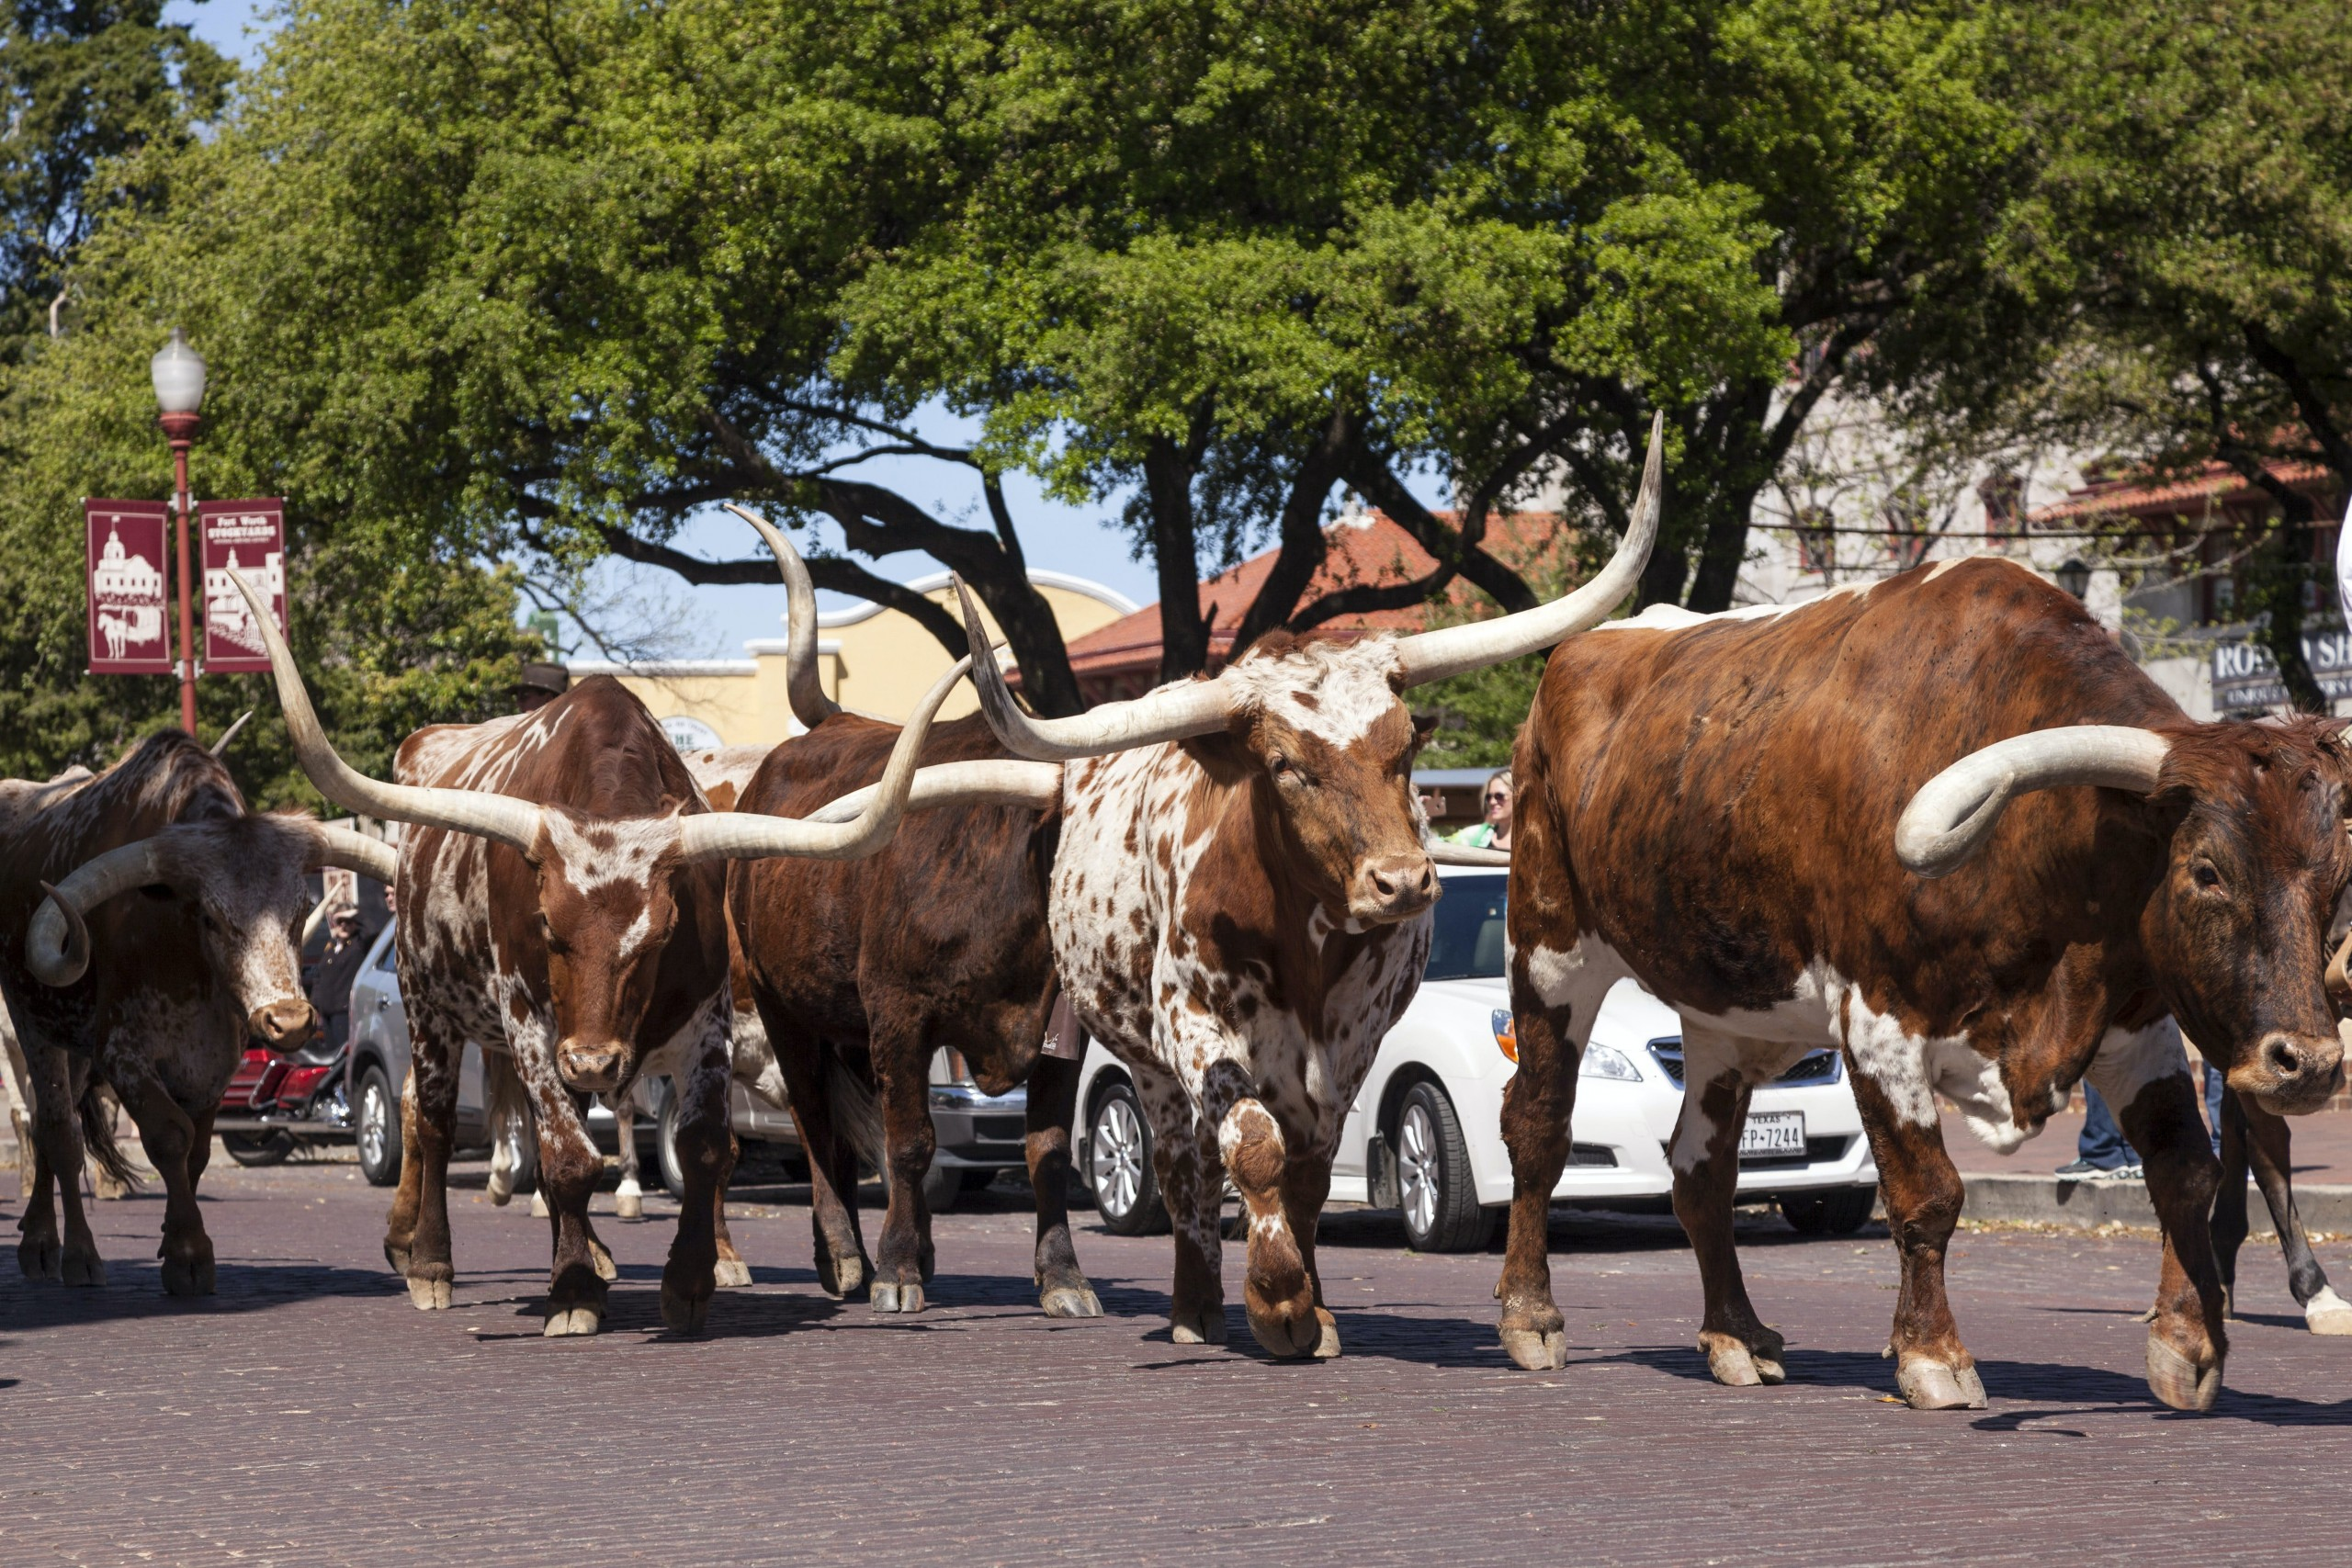 Cattle on the street of Forth Worth Stockyards